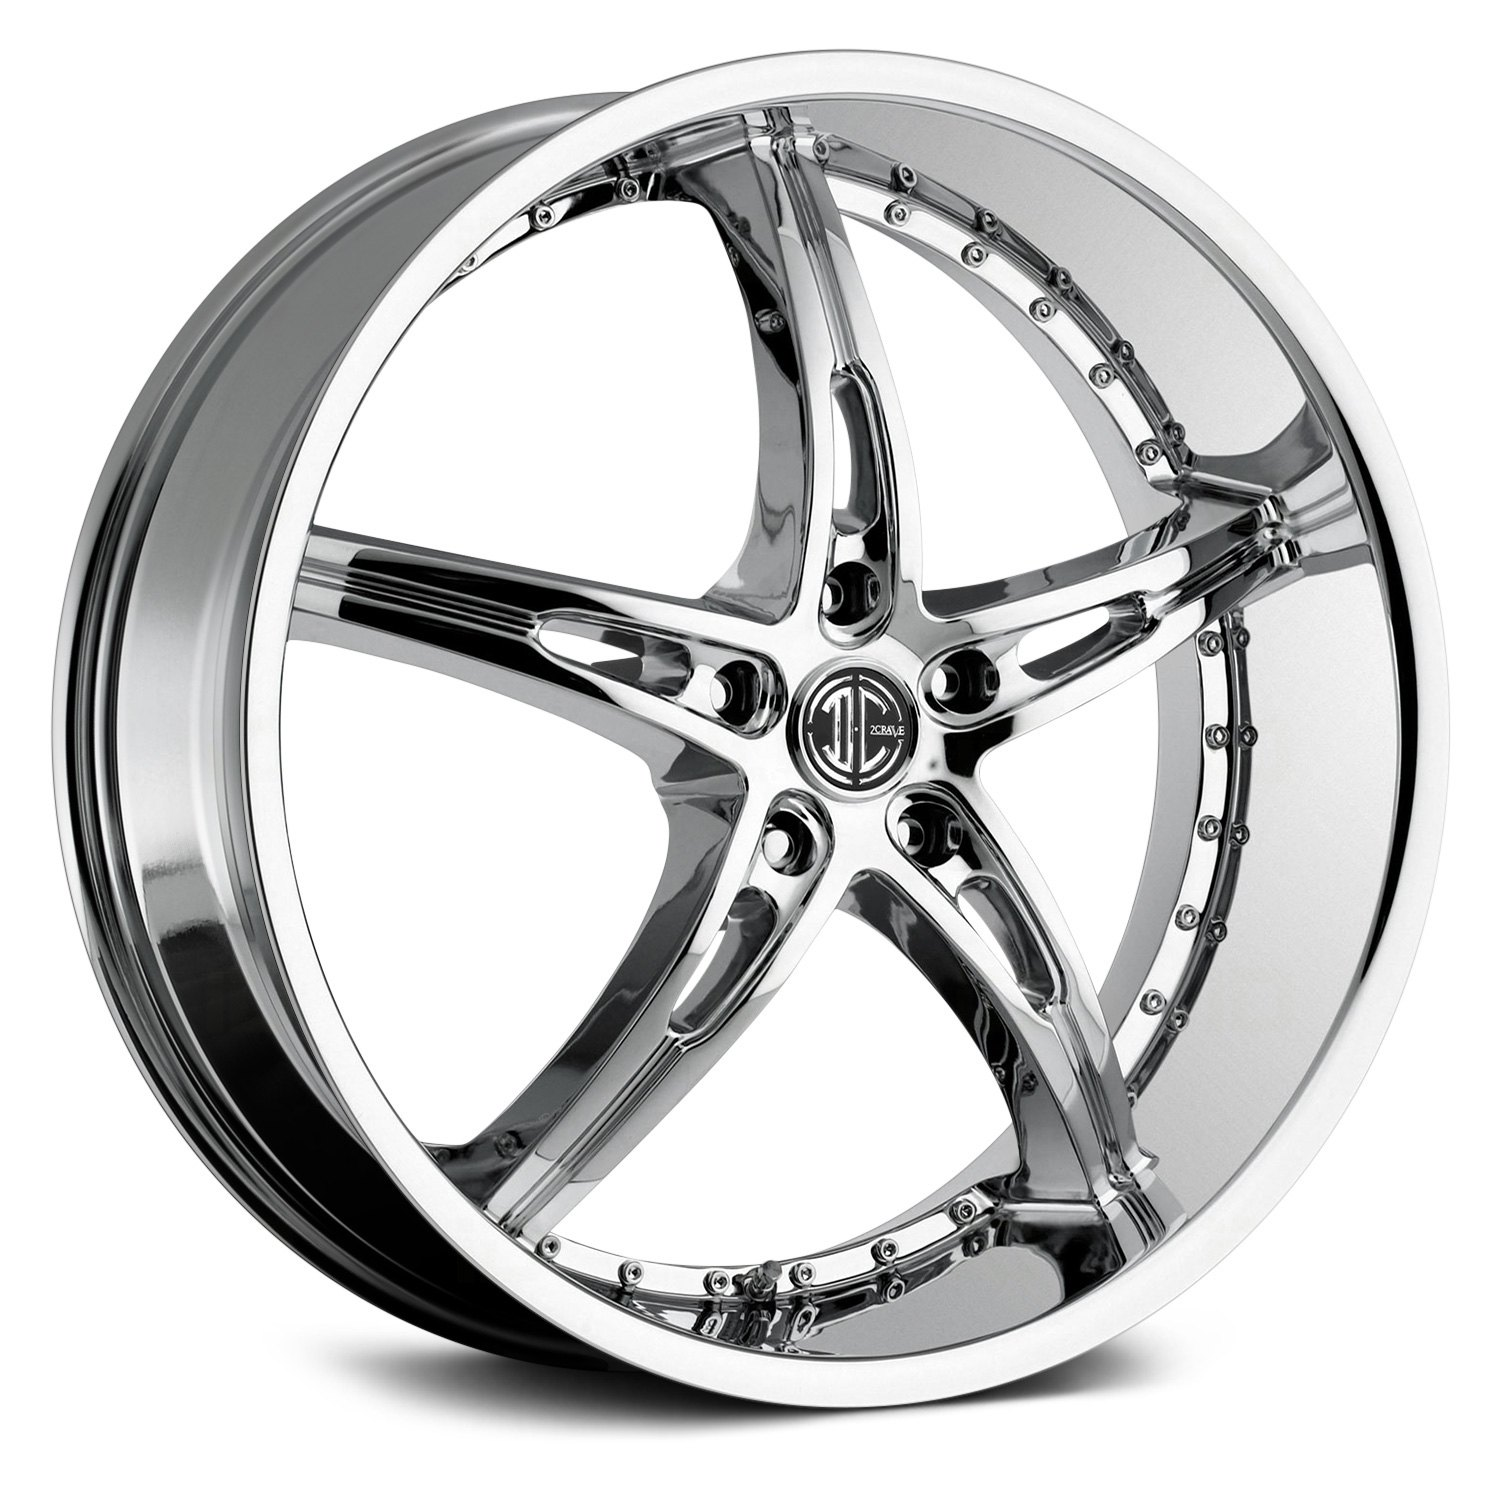 2 Crave 174 No 14 Wheels Chrome Rims